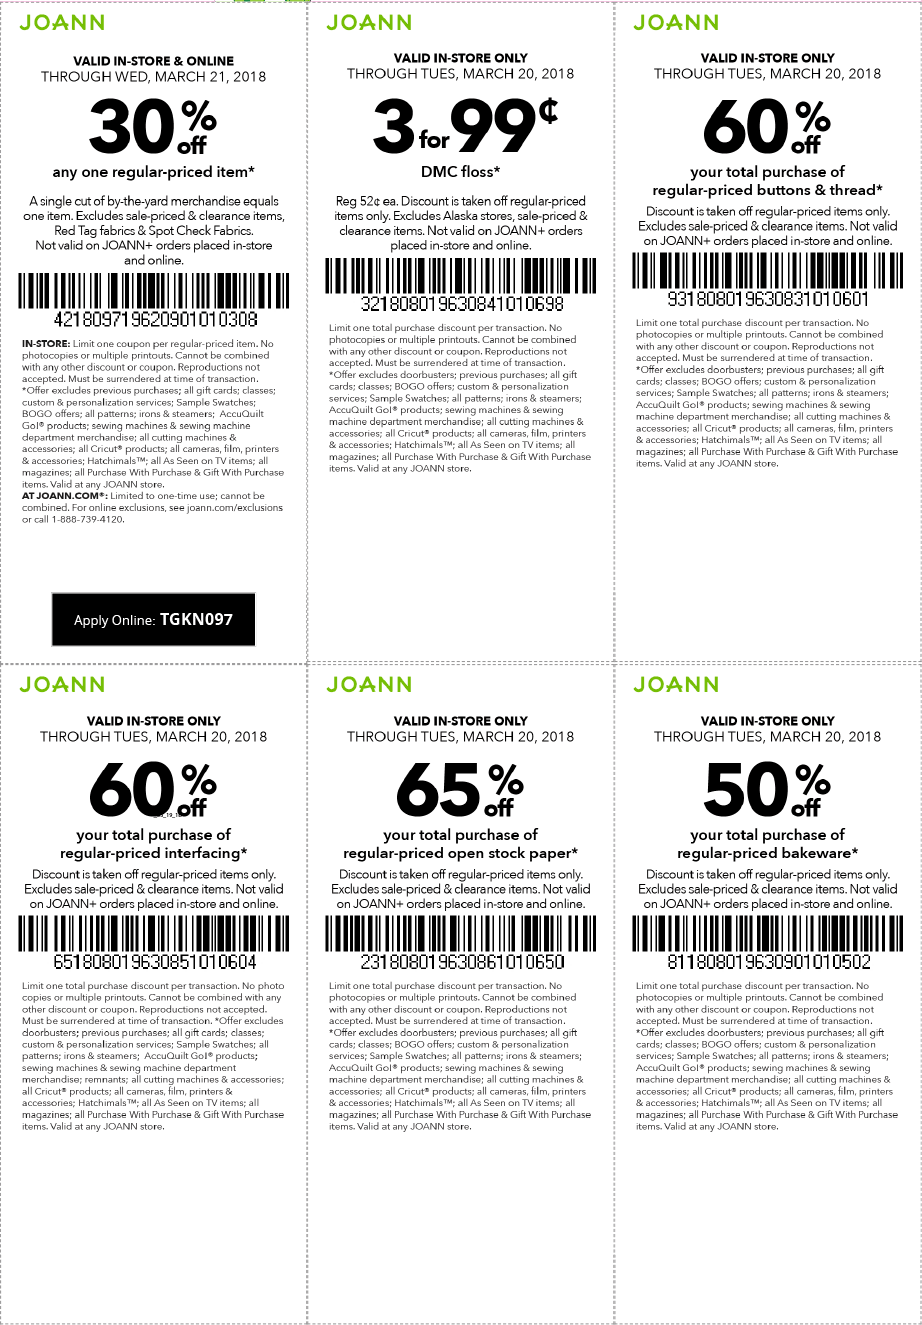 Joann Coupons - 30% off a single item at Joann, or online